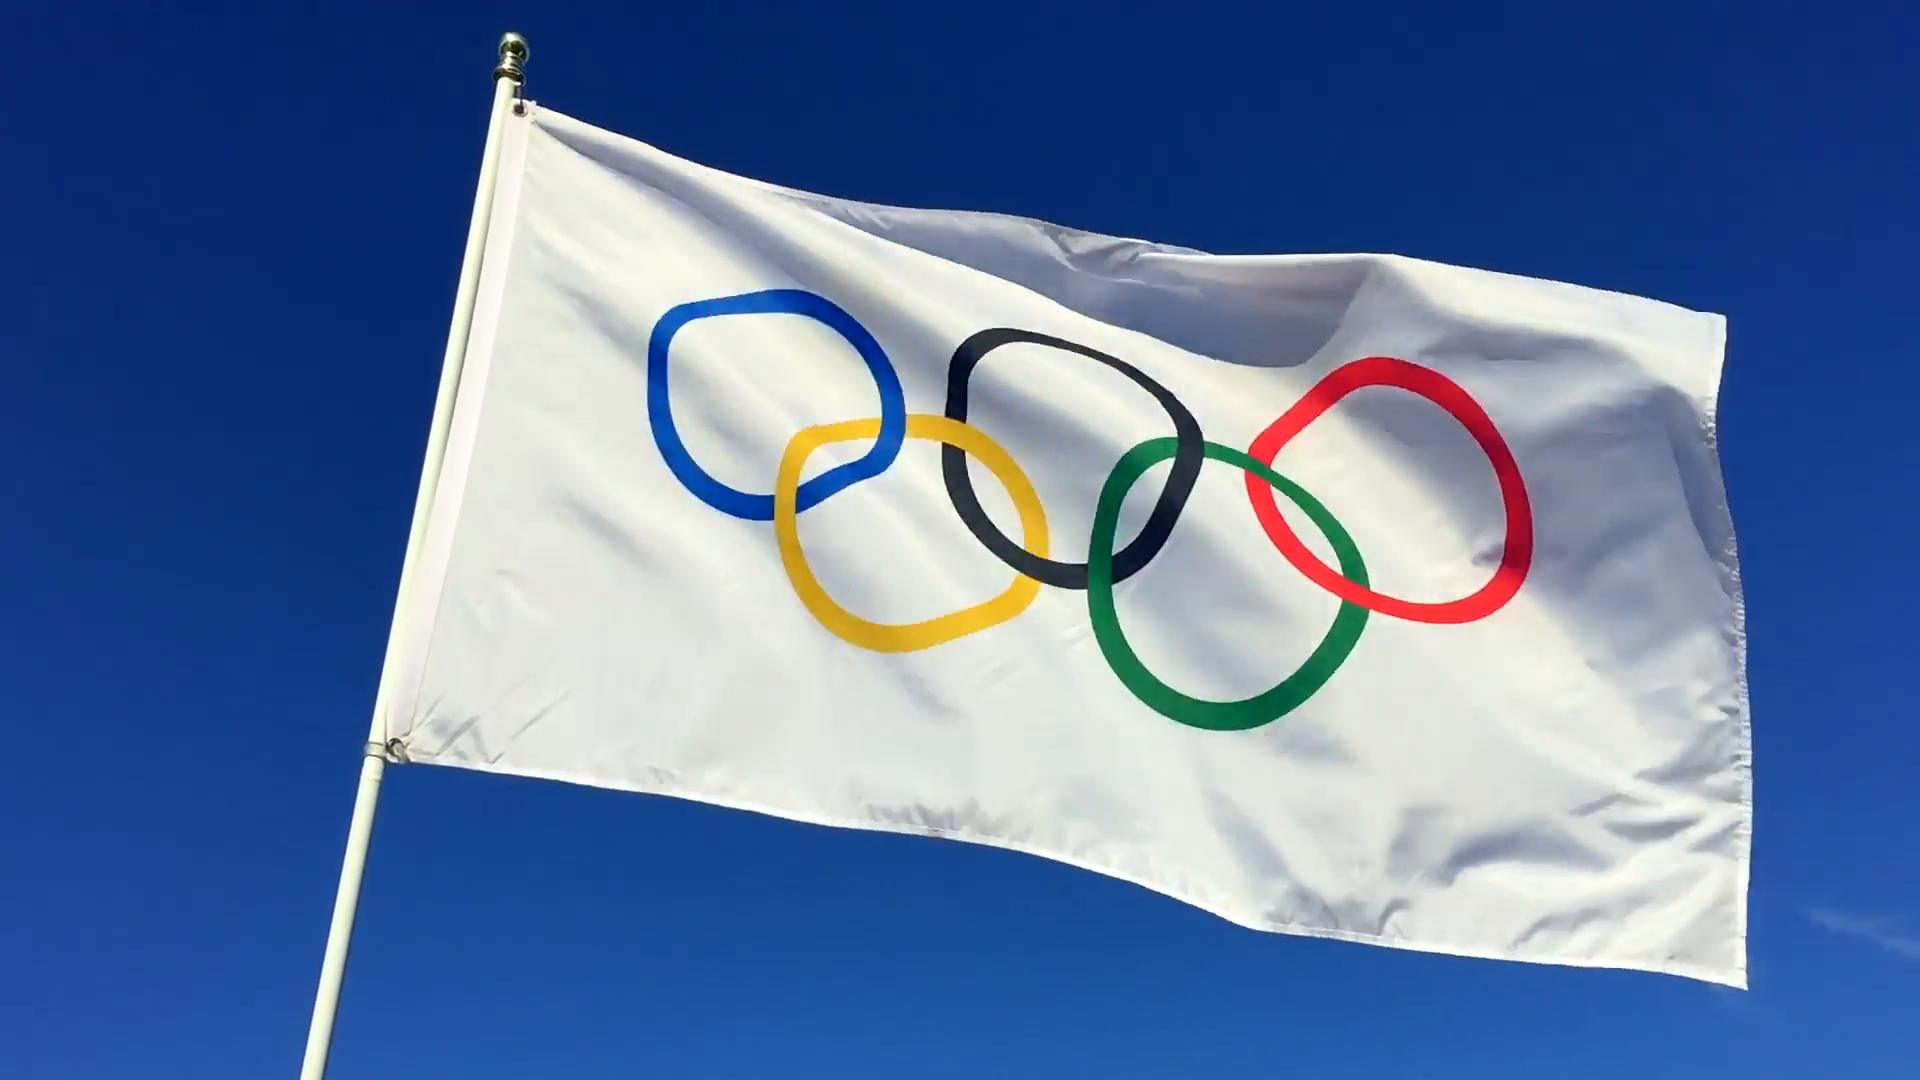 SA Rugby supports 2020 Olympic Games postponement - Sports Leo